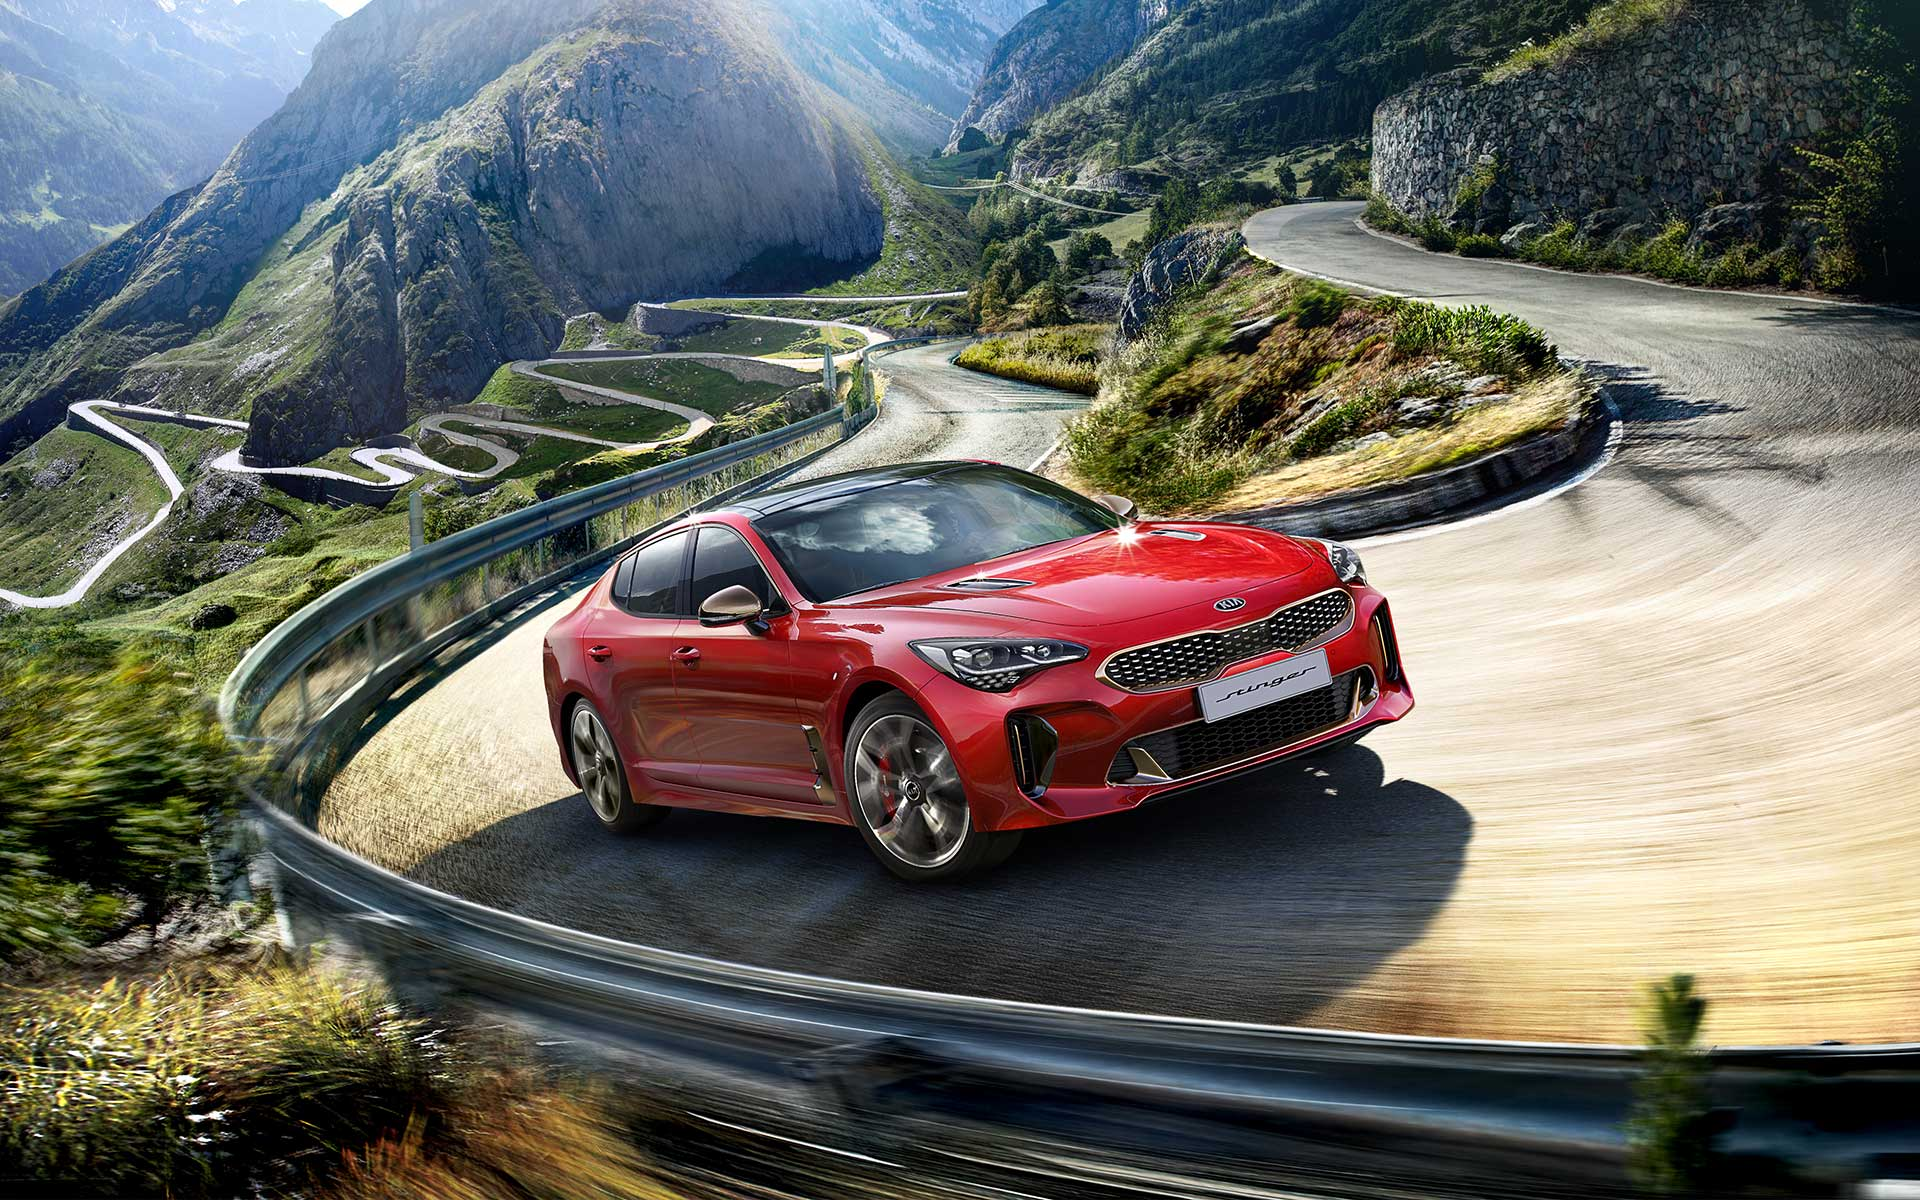 Kia Stinger design